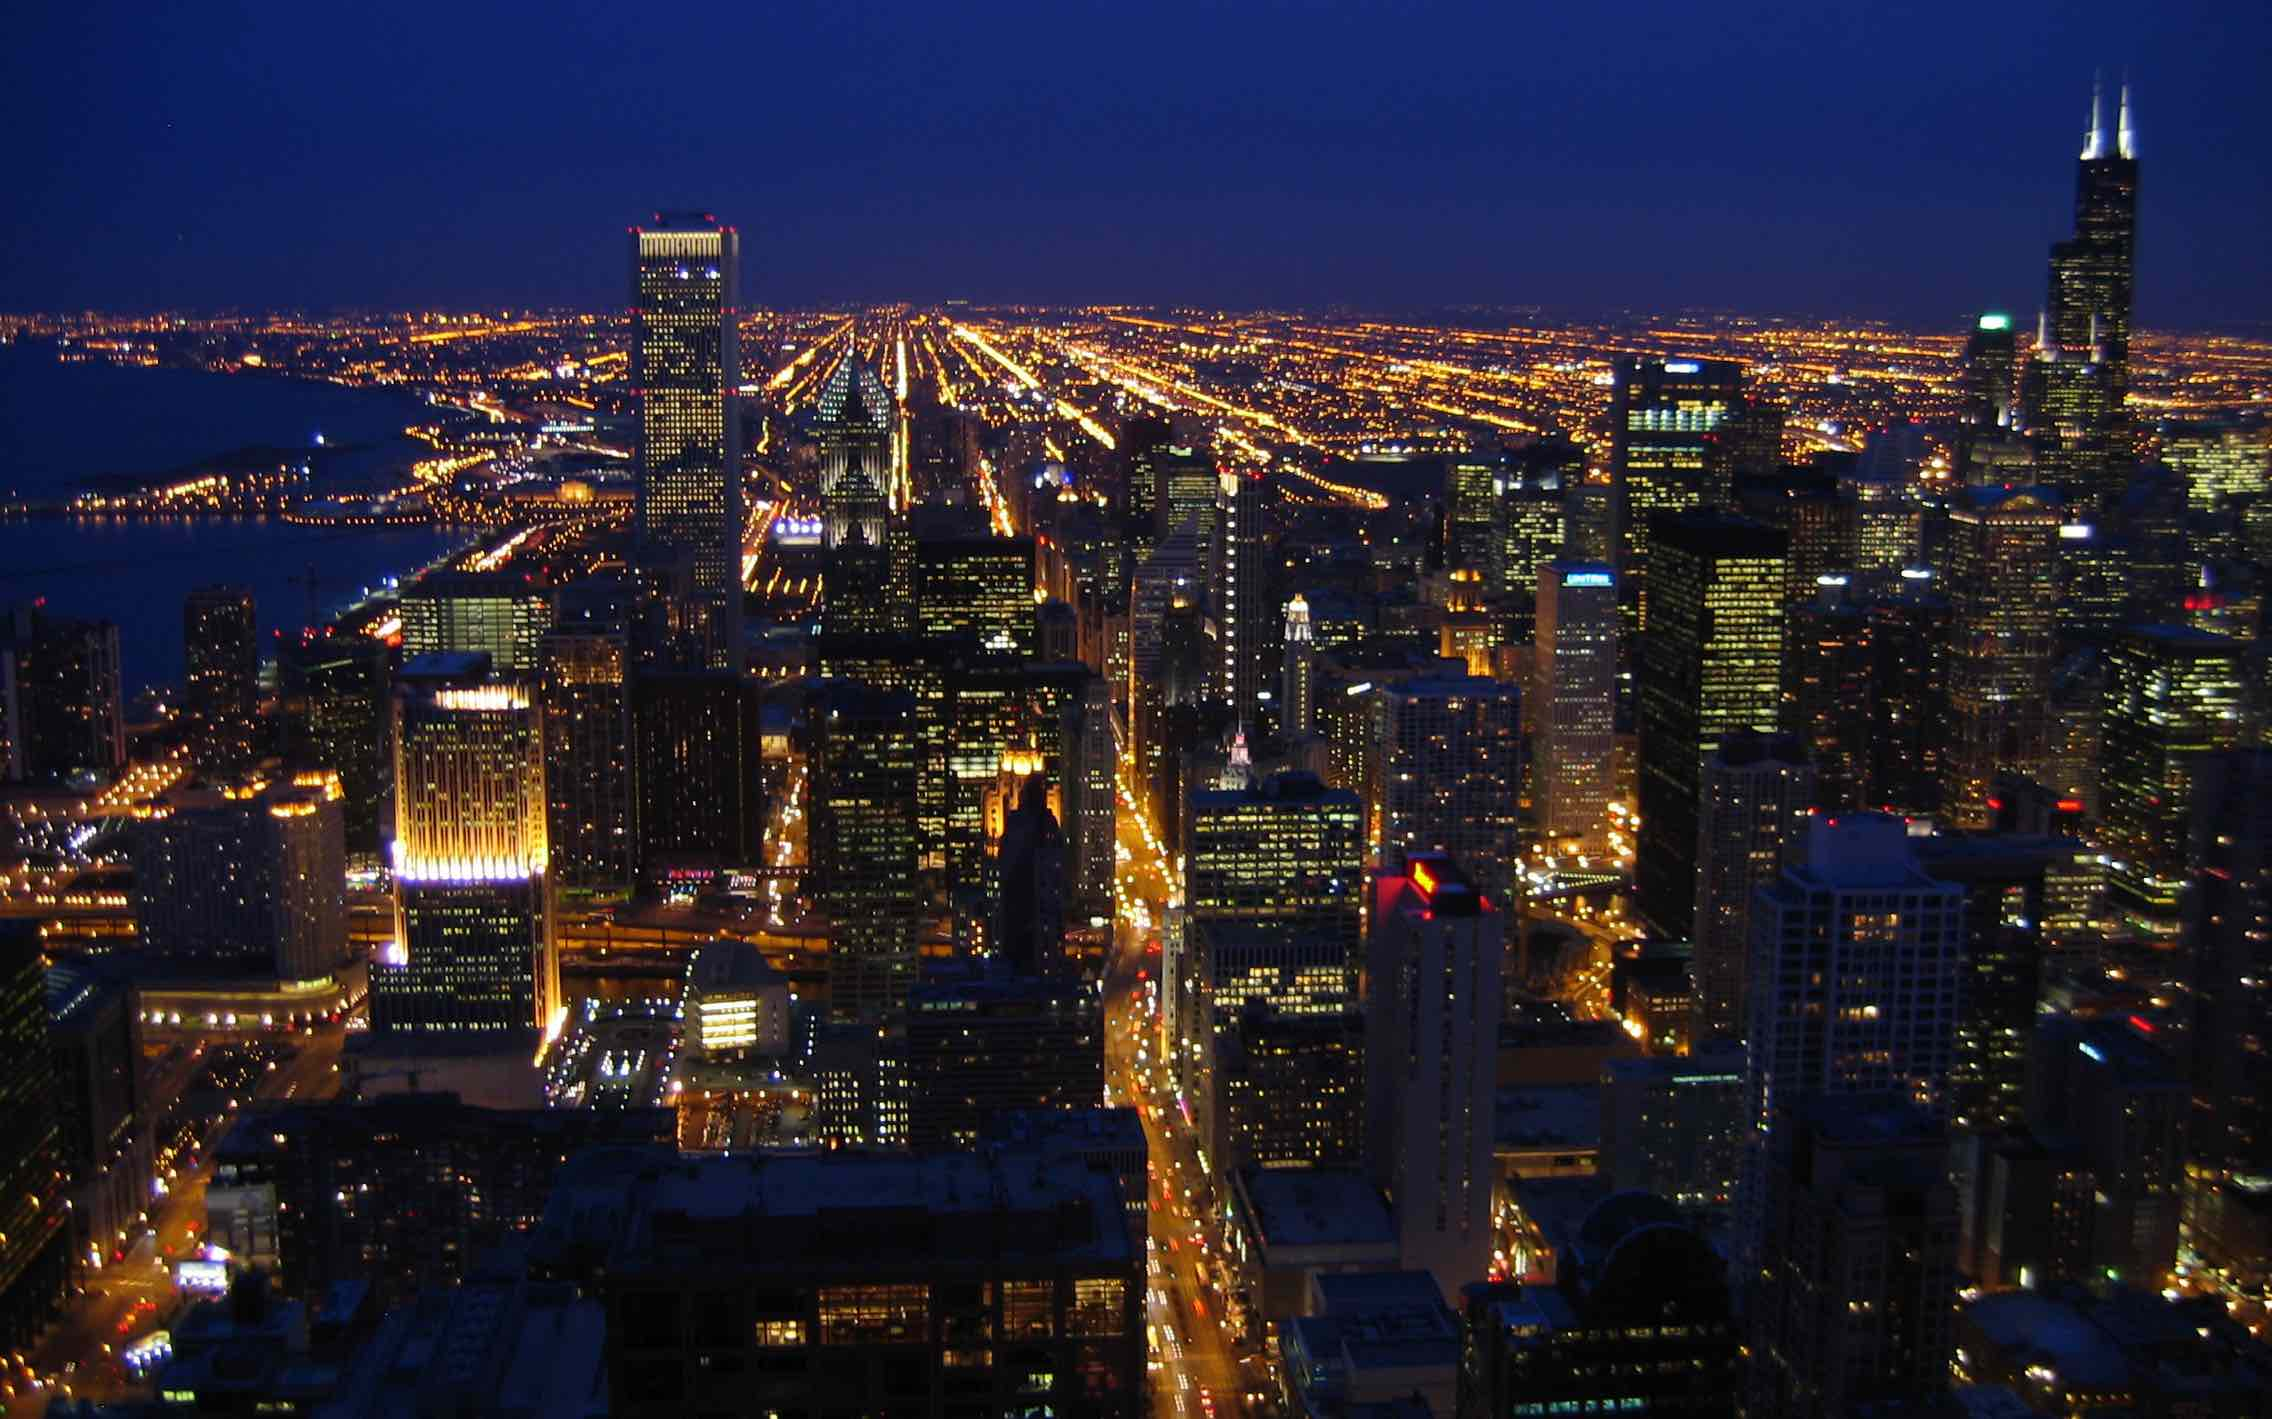 List of Largest US Cities. Biggest American Cities. Top US Cities. Chicago skyline. The downtown at night.